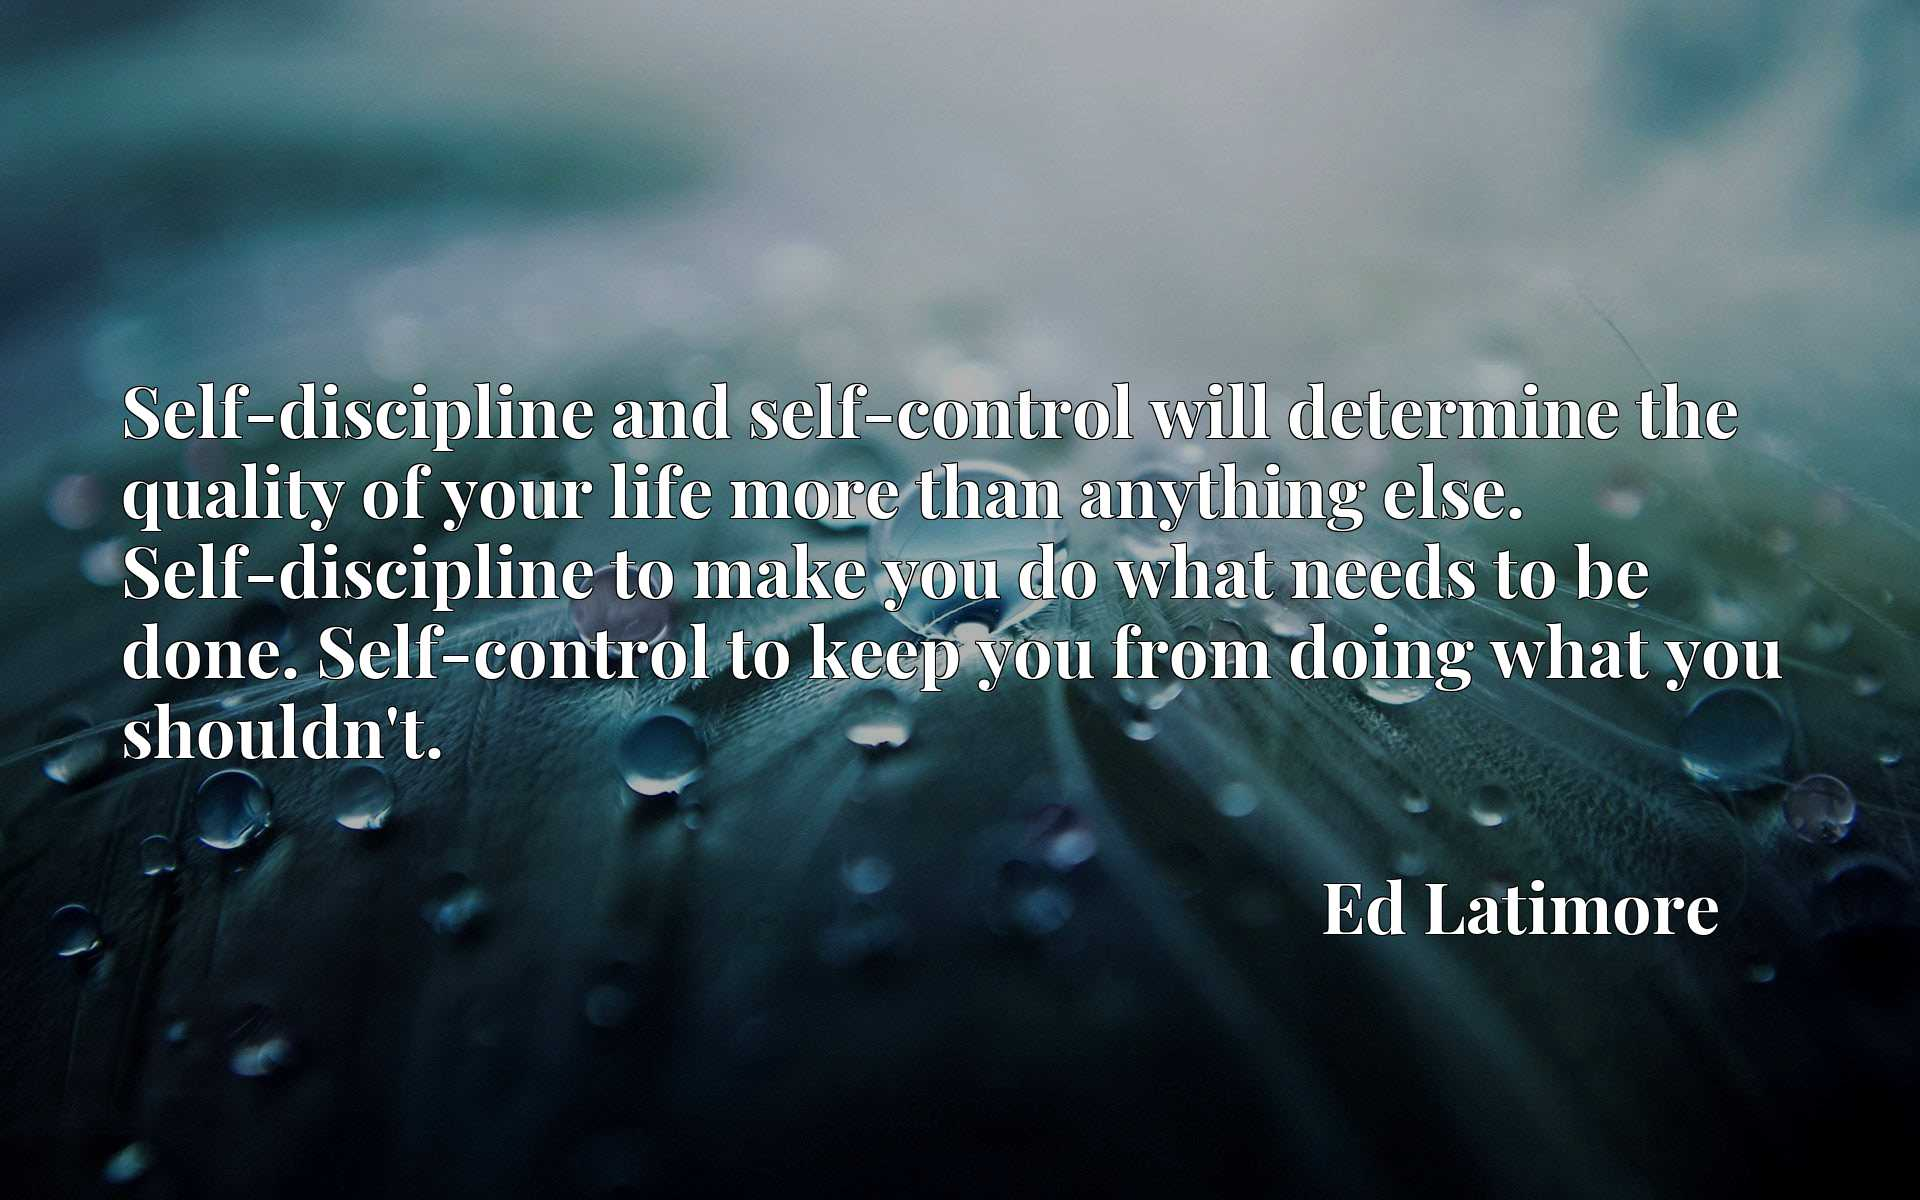 Self-discipline and self-control will determine the quality of your life more than anything else. Self-discipline to make you do what needs to be done. Self-control to keep you from doing what you shouldn't.